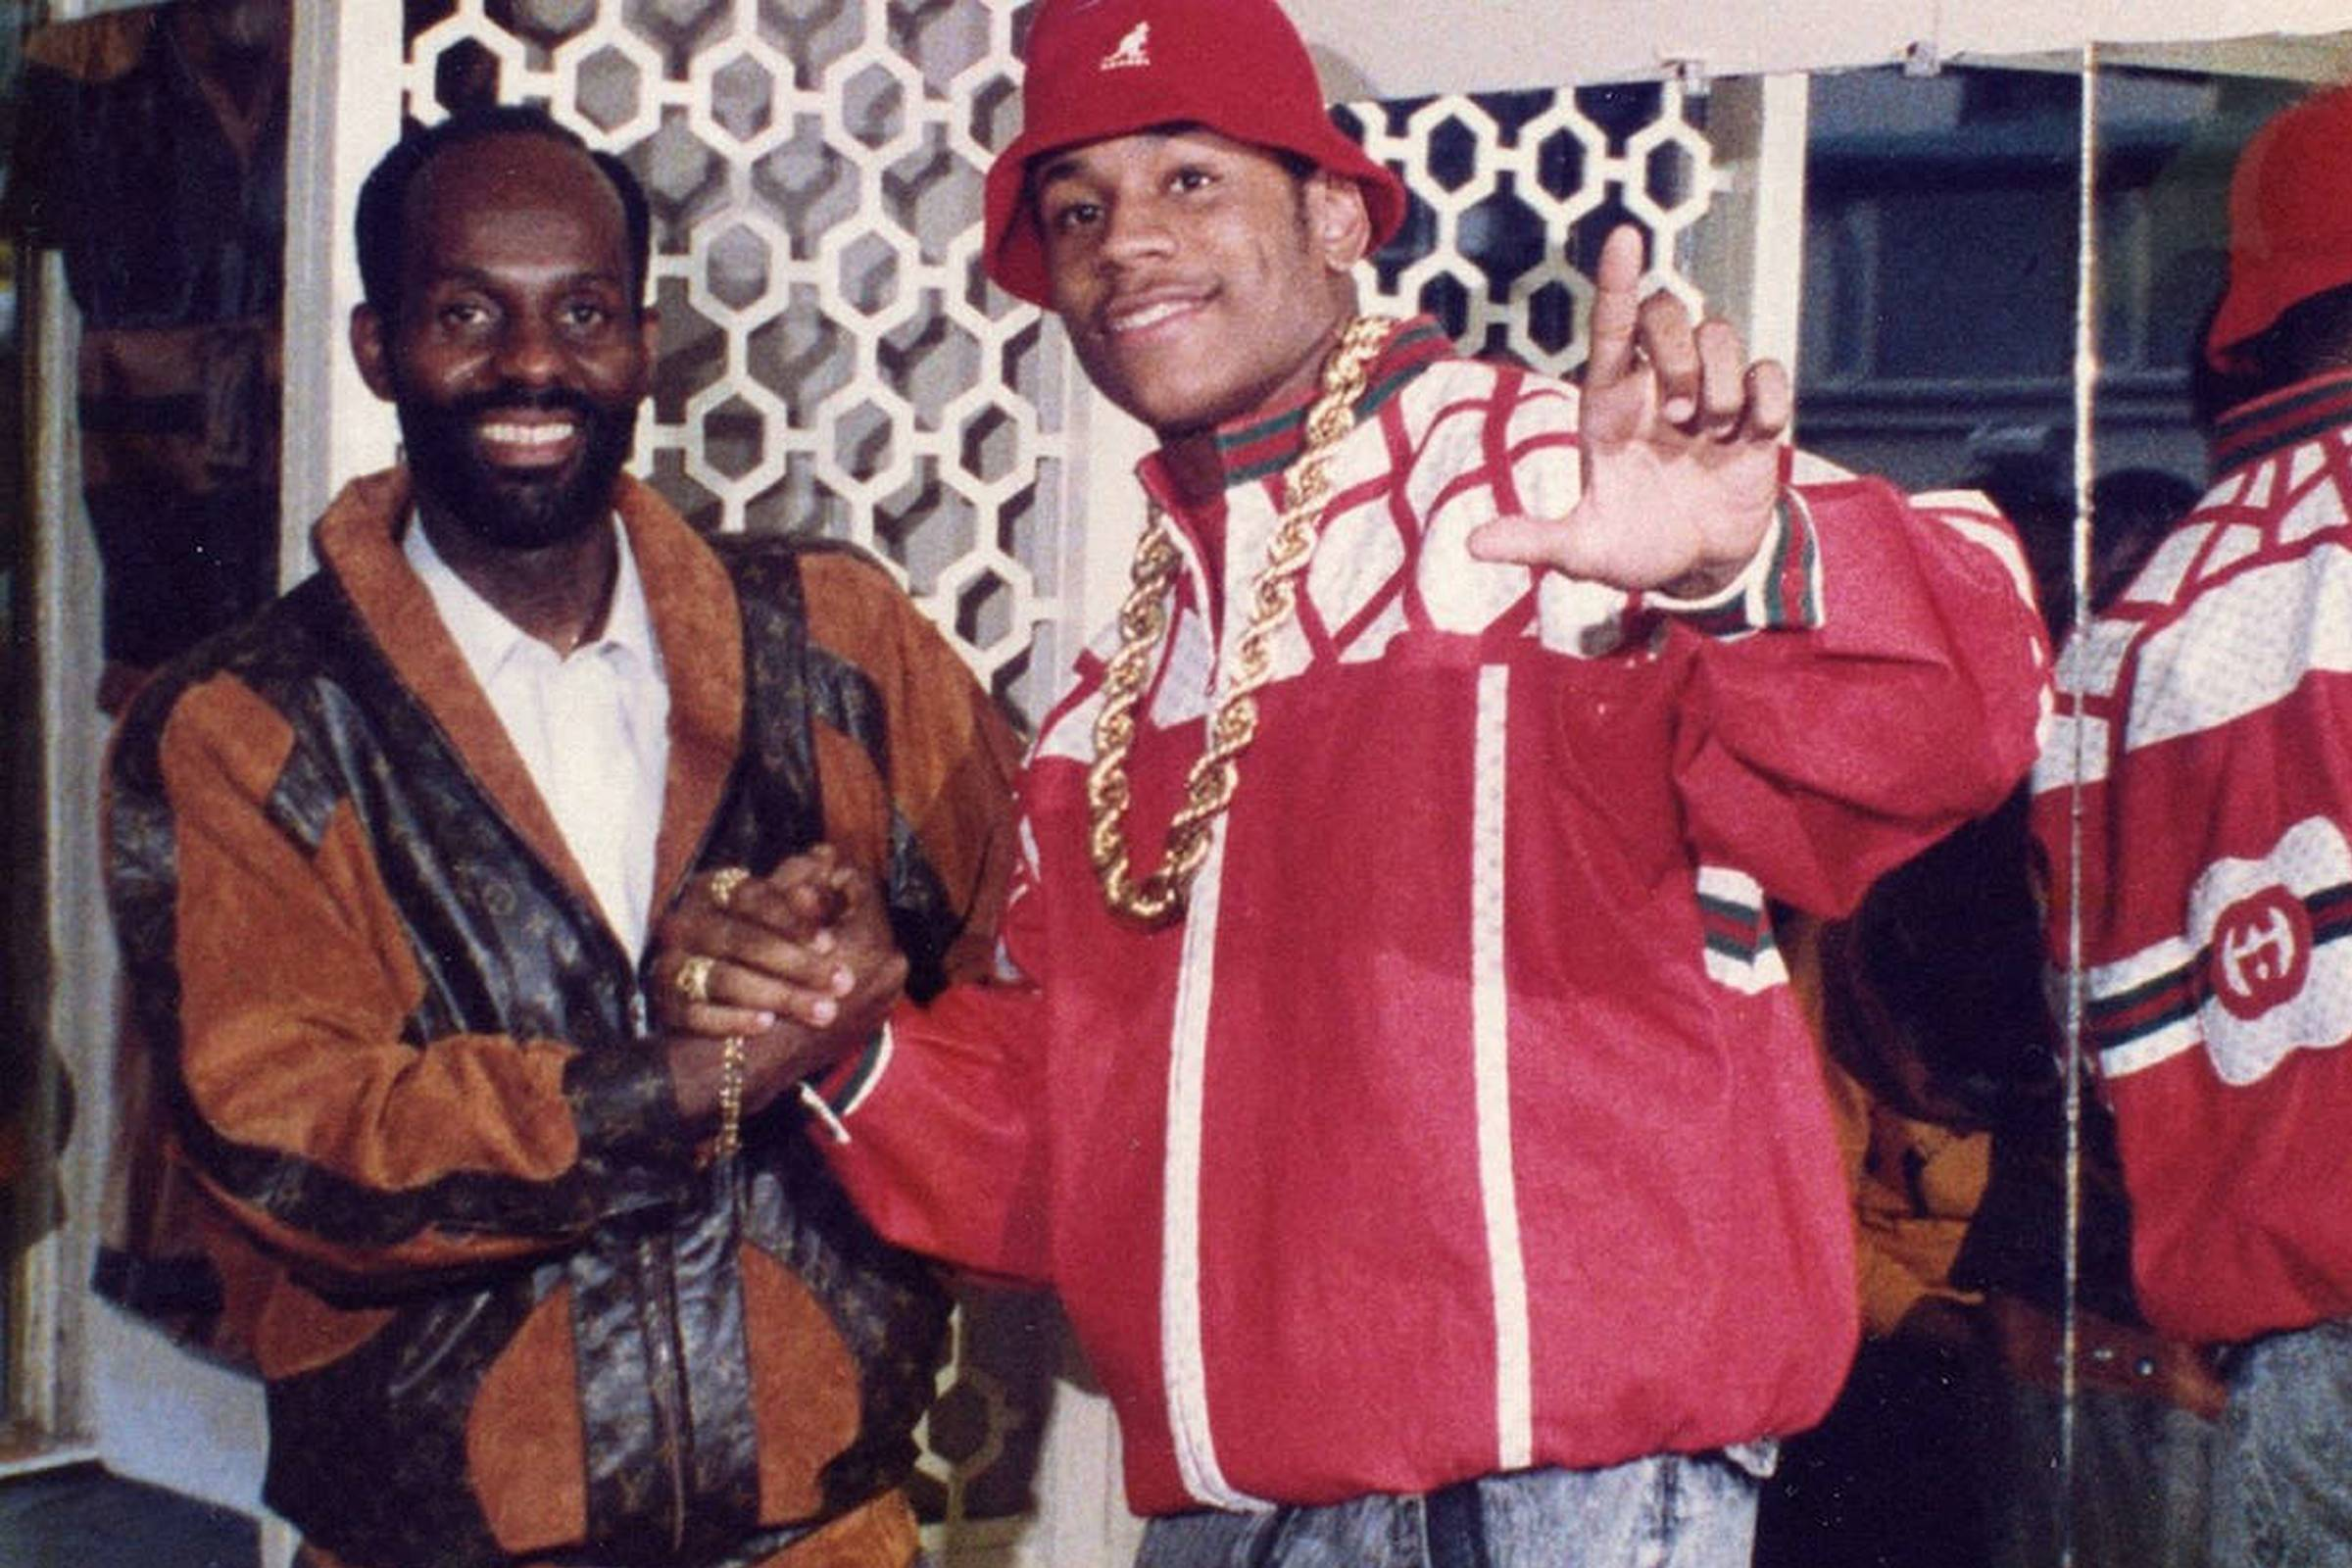 Dapper Dan (left) with LL Cool J in a custom Gucci jacket in 1986